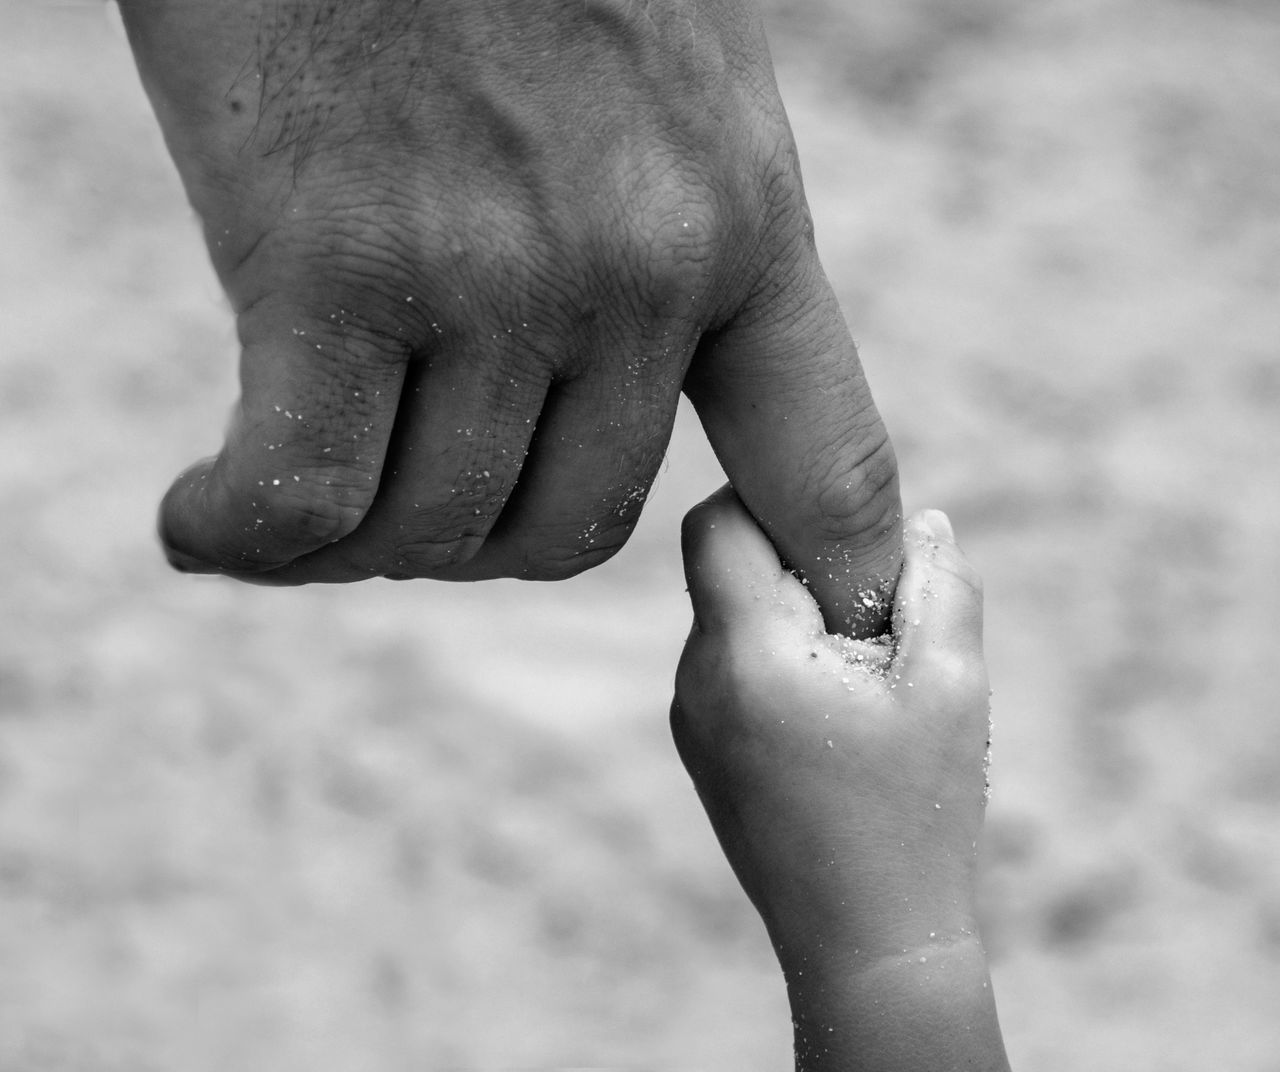 Just a little while longer.. Human Body Part Child Sand Two People Togetherness Summer Childhood Vacations Lifestyles Day Close-up Giving Adult Outdoors Human Hand Beach People Real People Expressive Innocence Holding Hands Holding On Fatherhood Moments Father Littleandbig